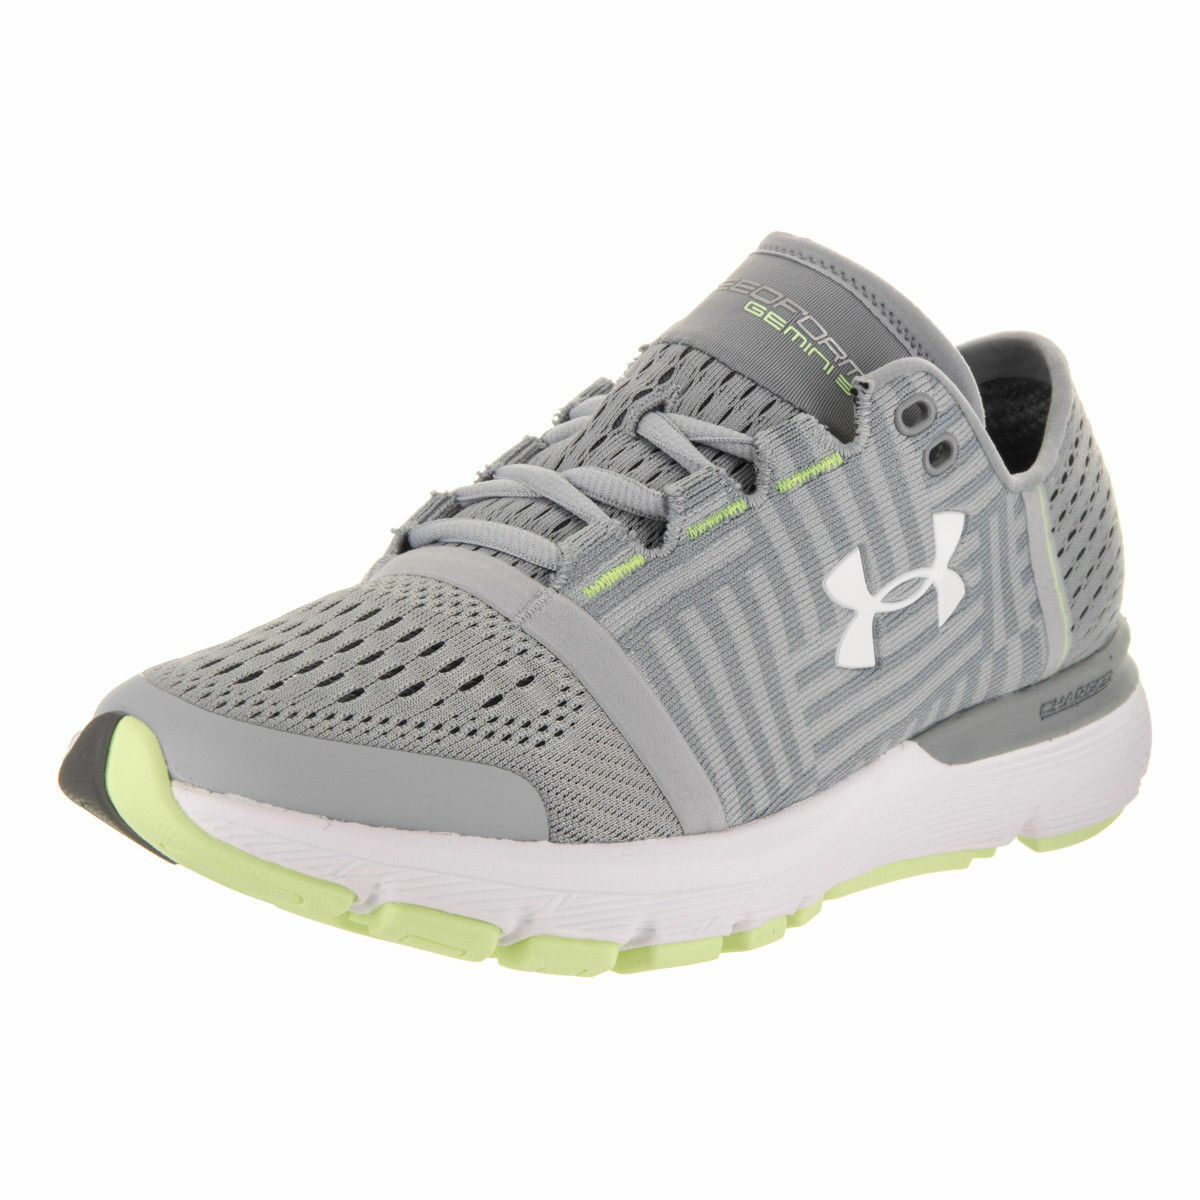 Under Armour 1285481-942 Grey Speedform Gemini 3 Running Shoes  6